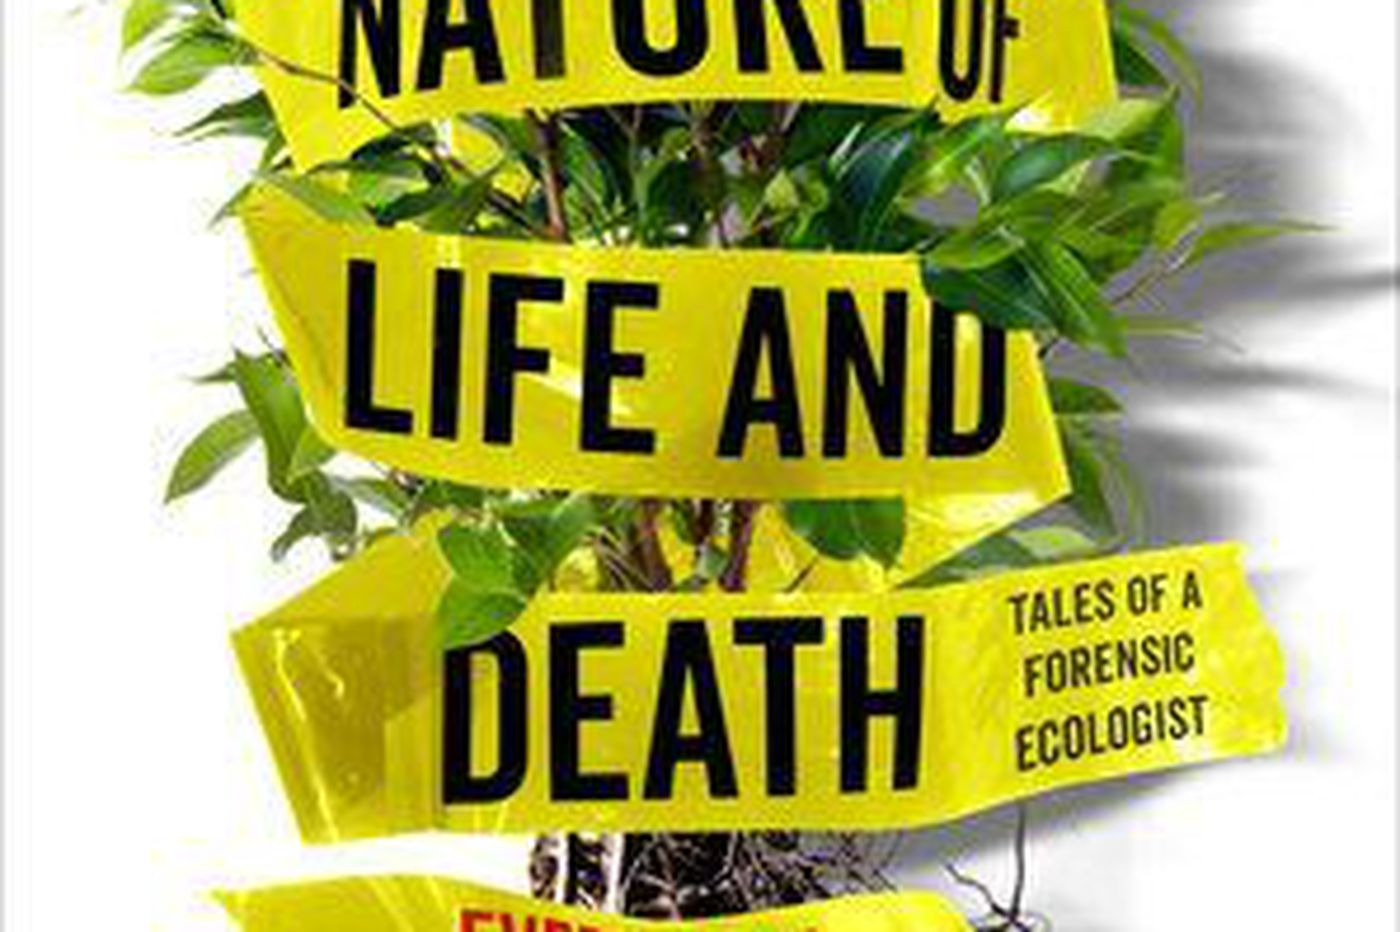 By studying a few grains of pollen, she can trace a murderer's footsteps | Book review